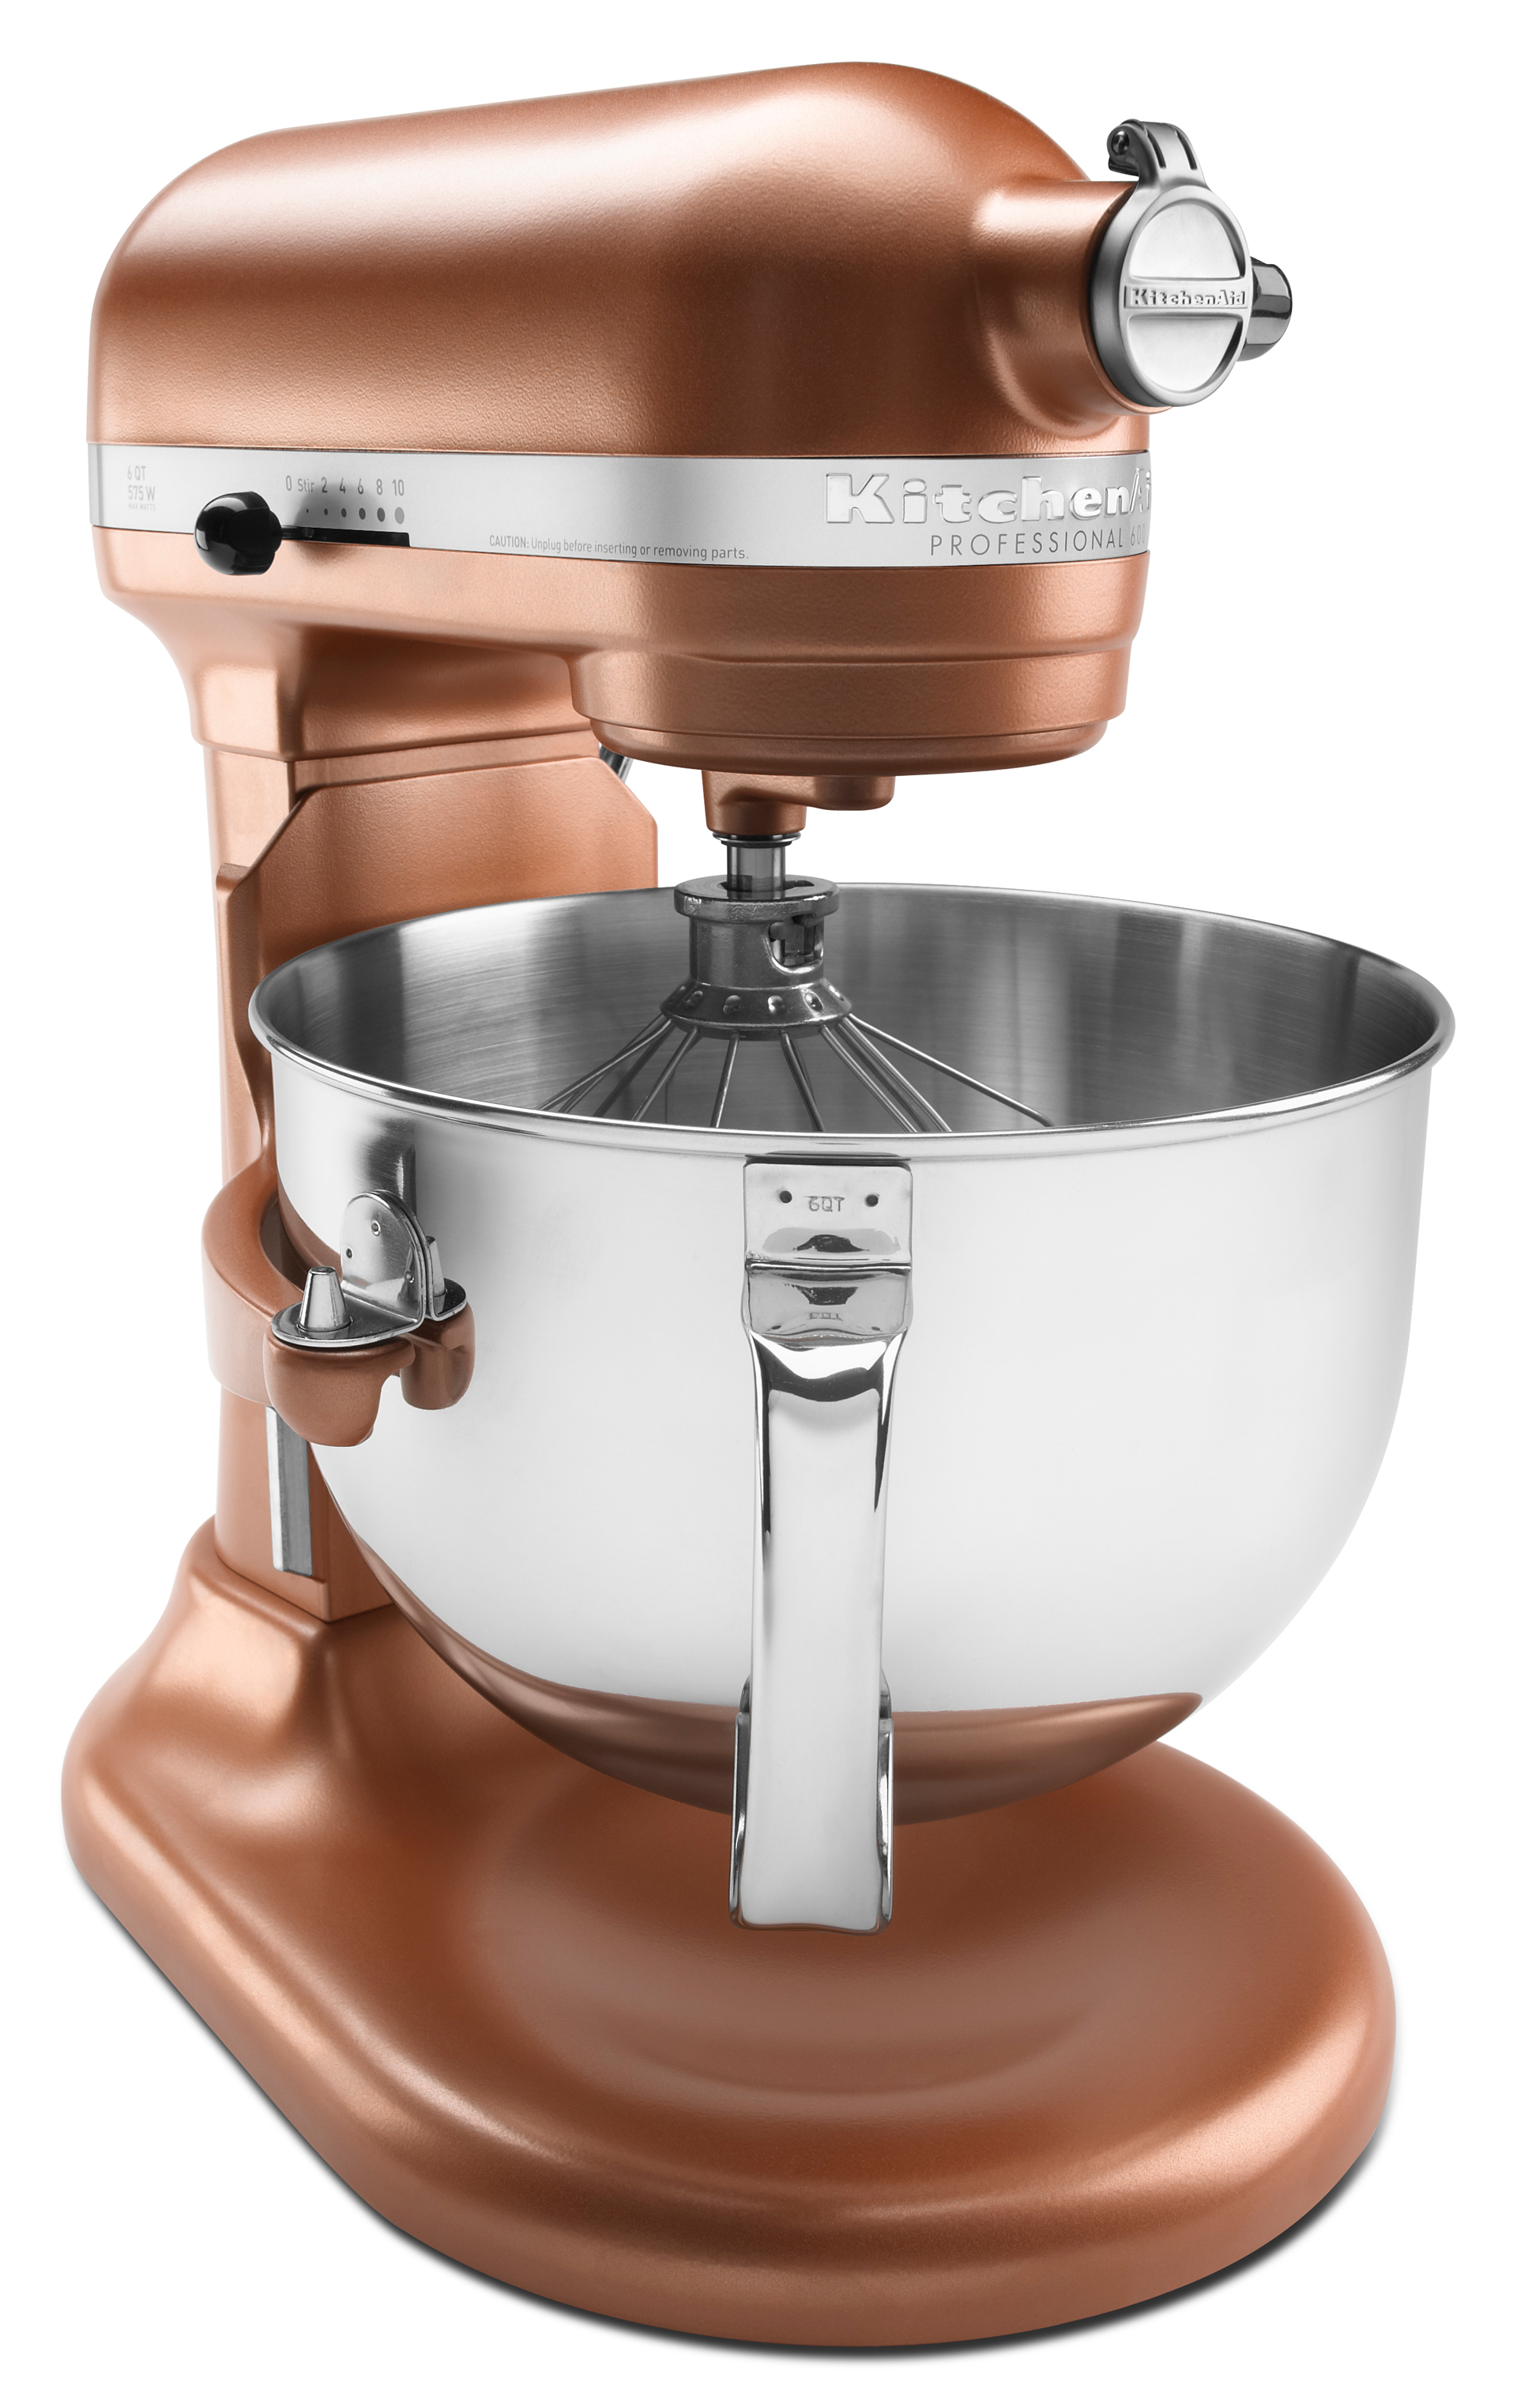 Kitchenaid stand mixers colors - Kitchenaid Stand Mixers Colors 41